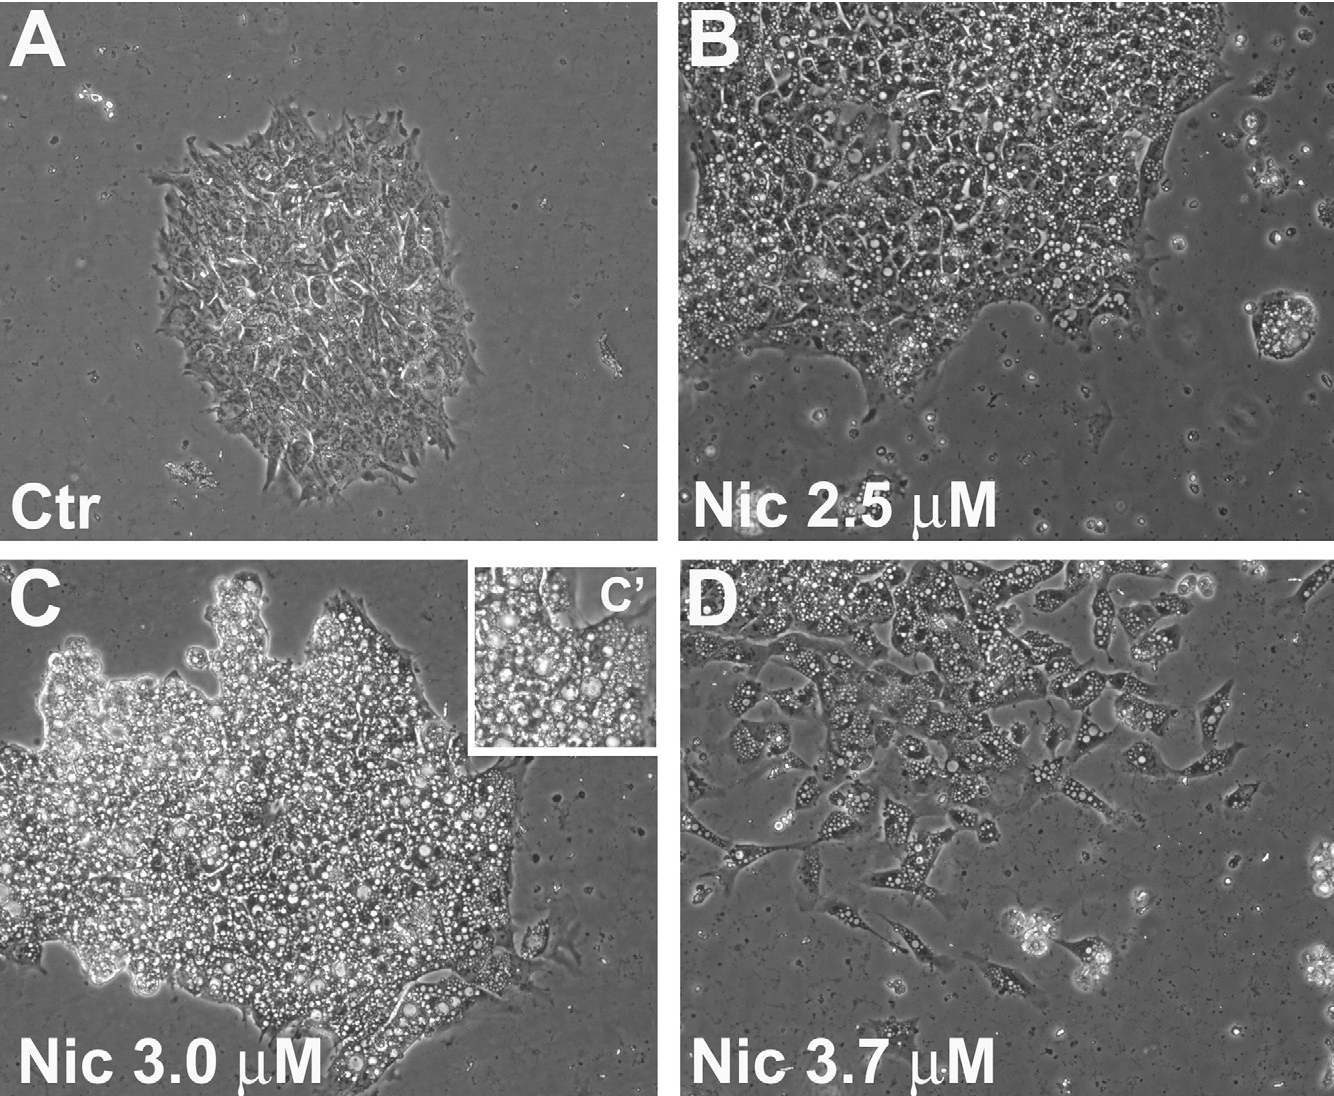 Fig. 3. Nicotine exposure induced rapid formation of numerous vacuoles in the hESC cytosol. H7 cells were cultured on Matrigel-coated wells in control medium (A) or m ter pl w nicoti w ted (D t was r